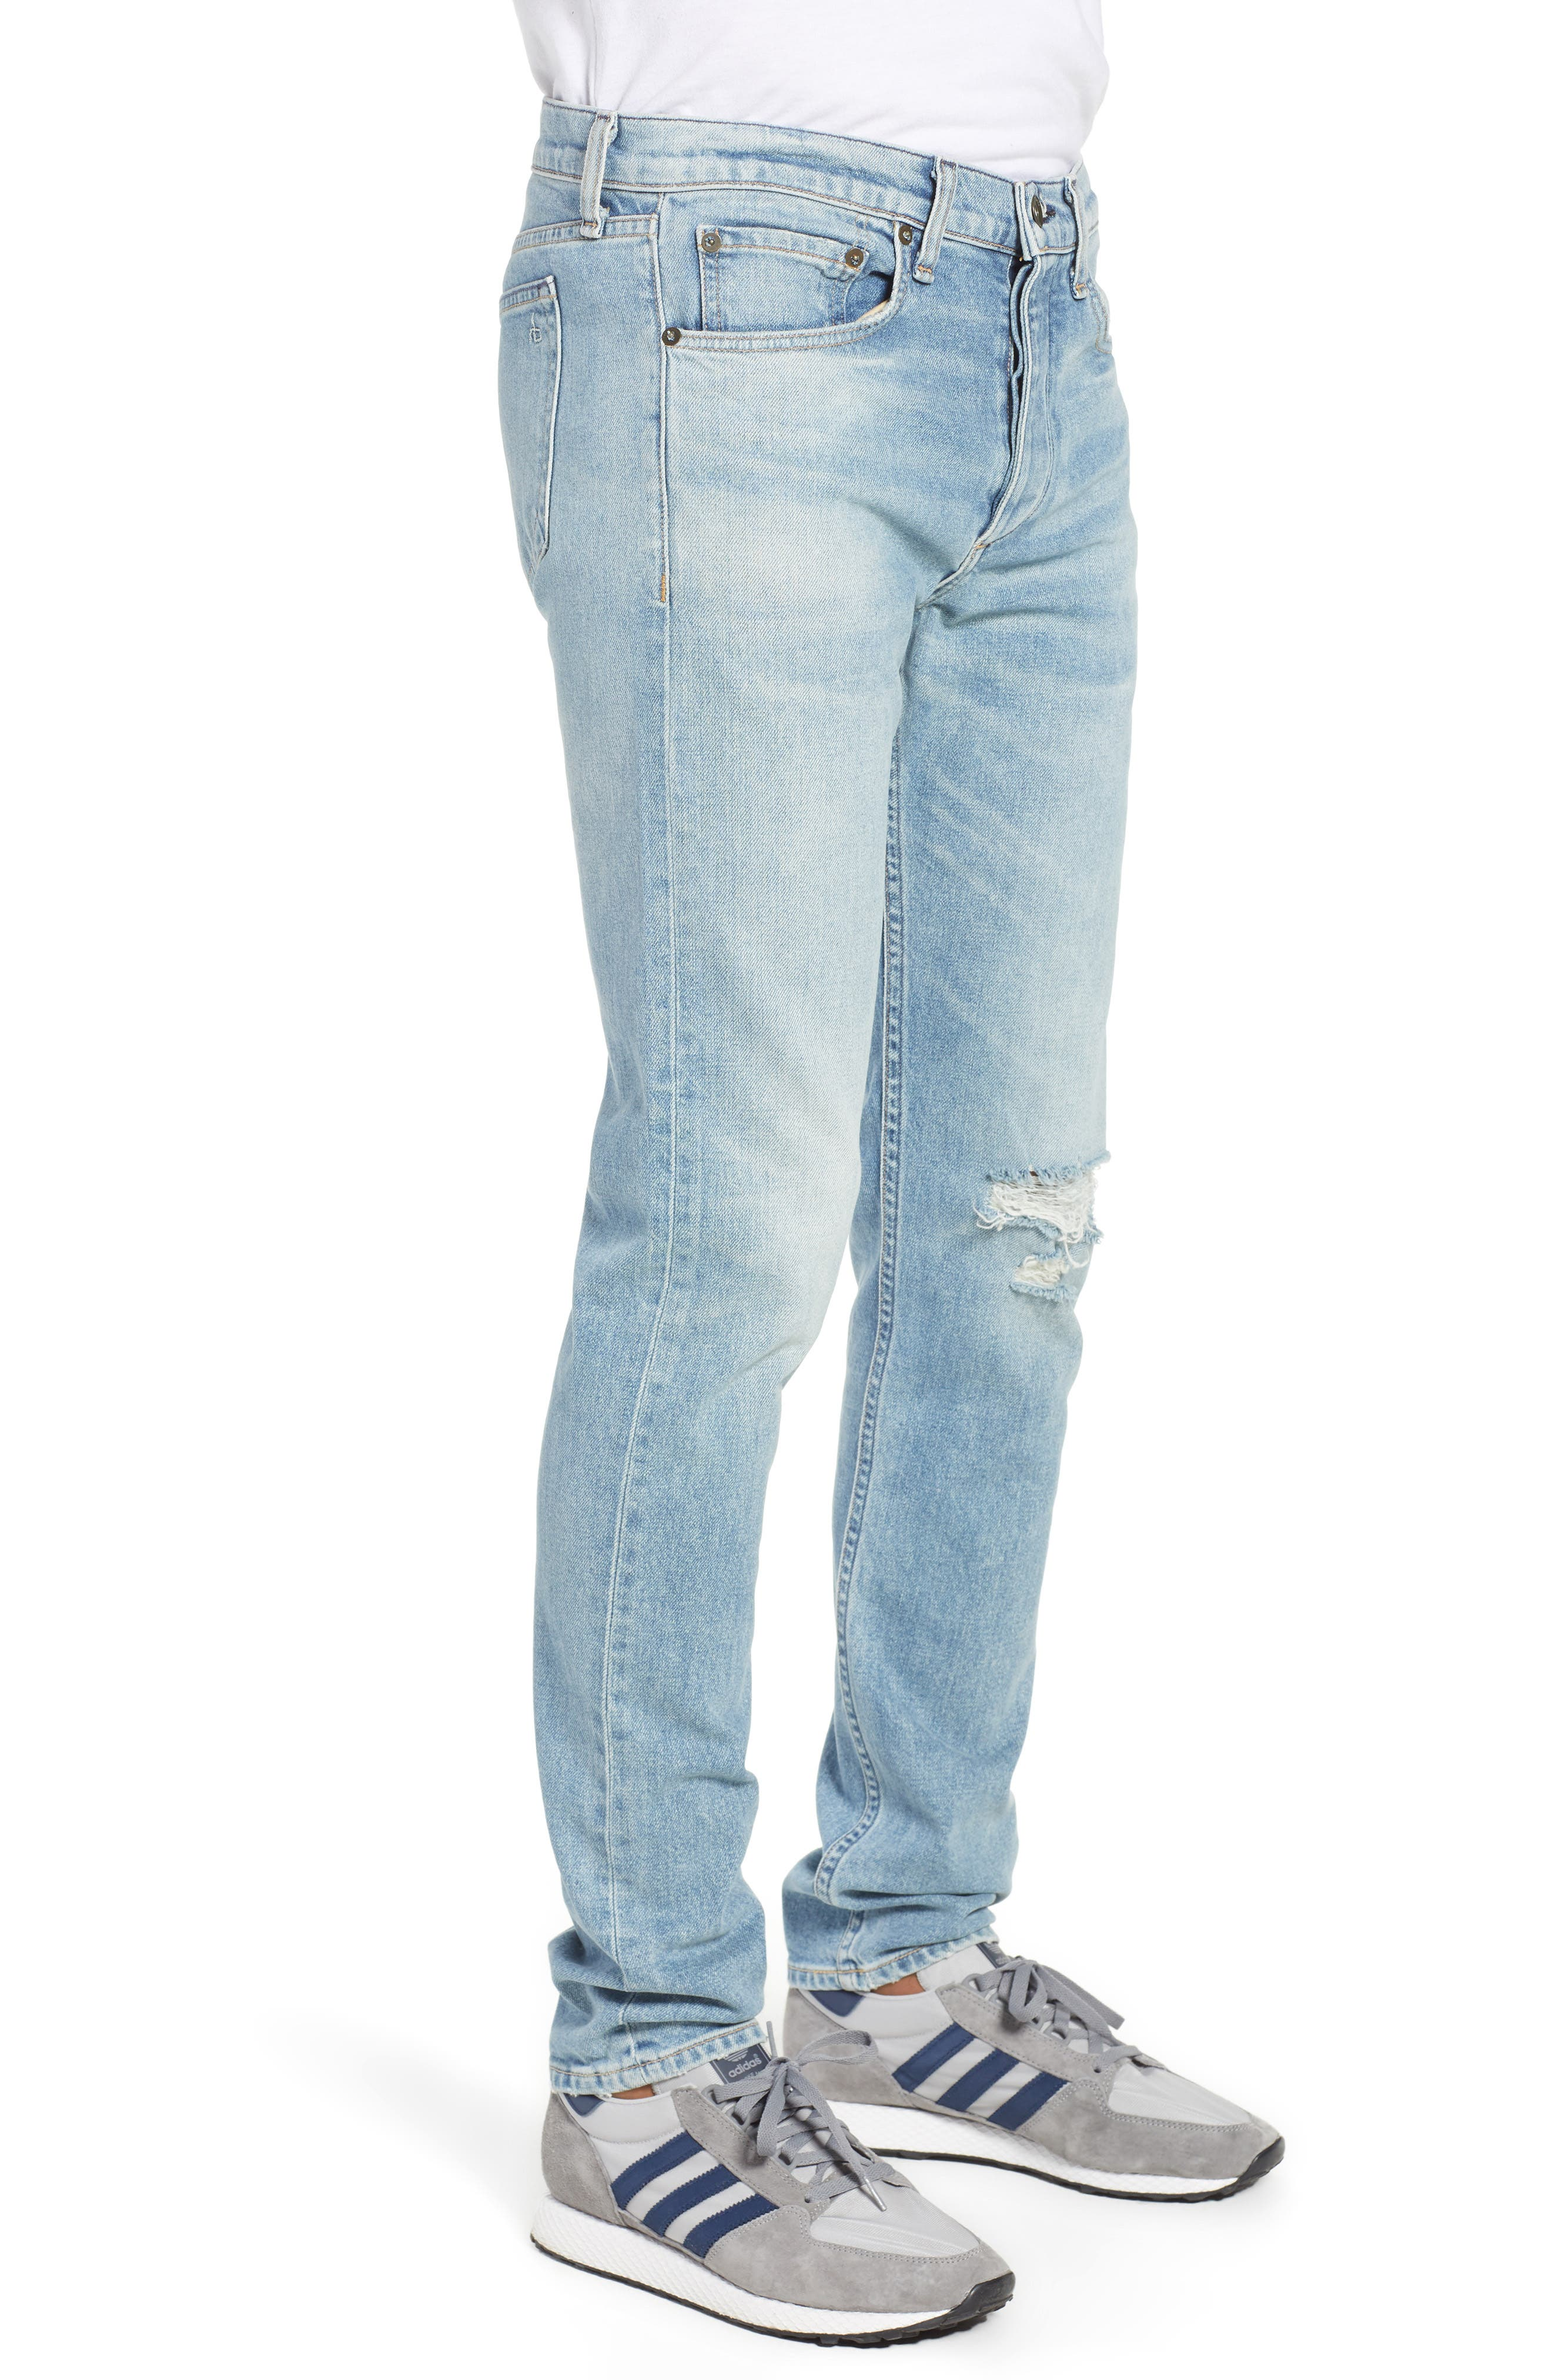 Fit 2 Slim Fit Jeans,                             Alternate thumbnail 3, color,                             JAMIE WITH HOLES